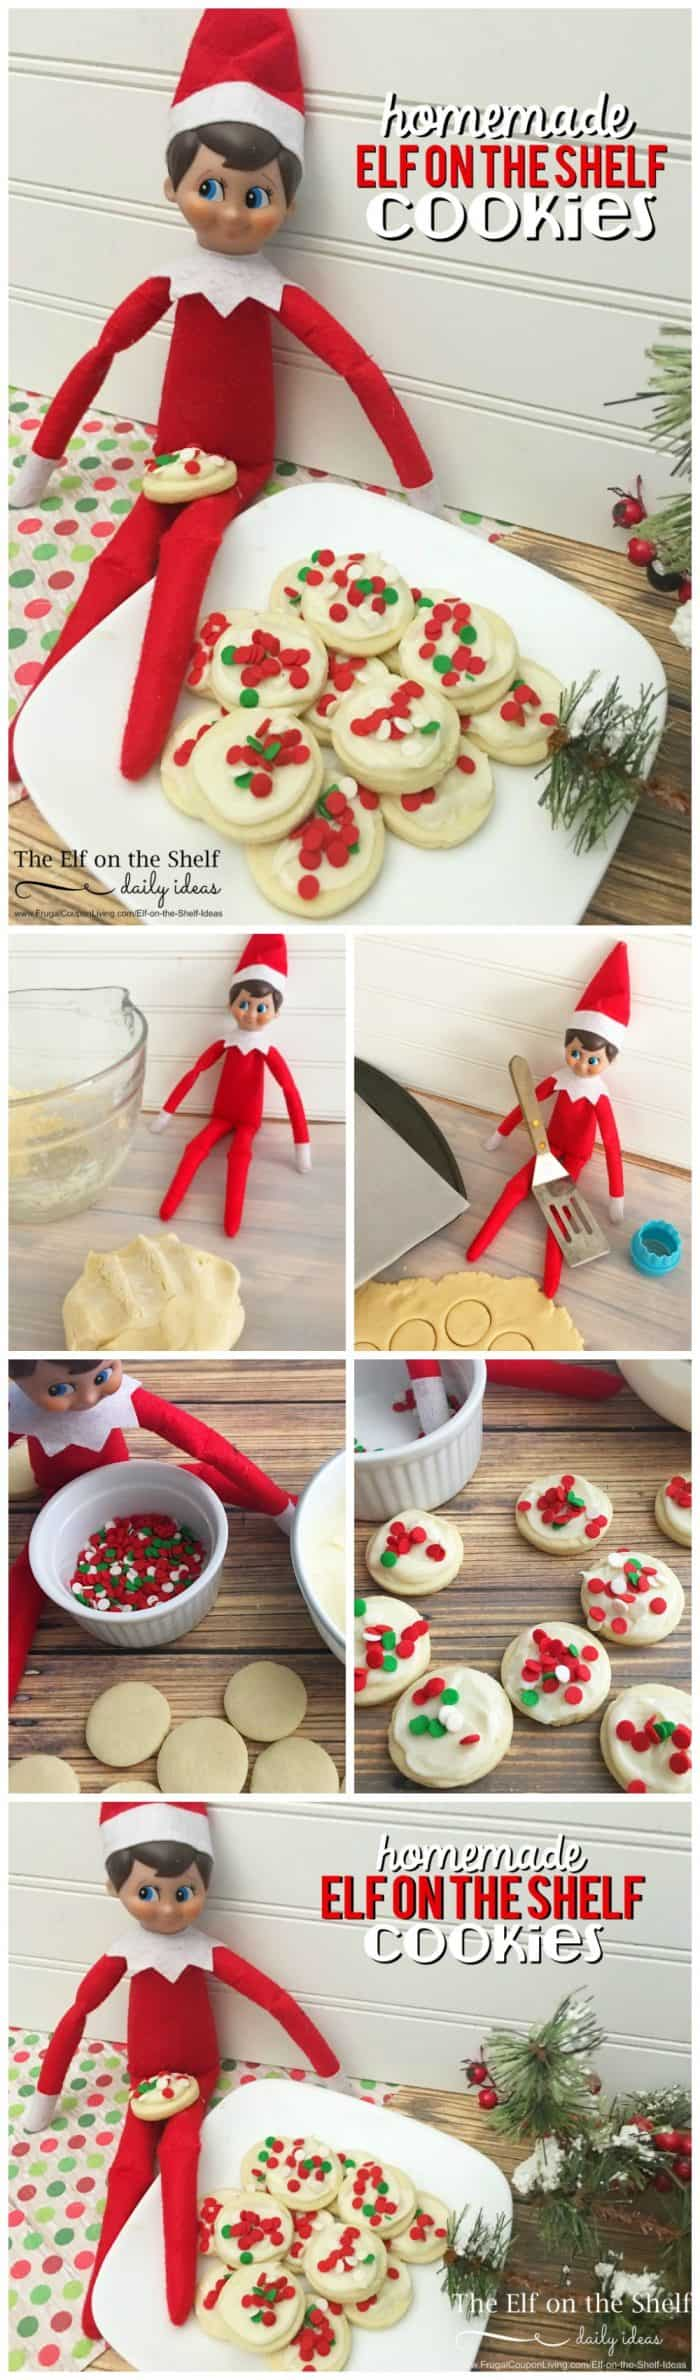 homemade-elf-cookies-elf-on-the-shelf-ideas-frugal-coupon-living-long